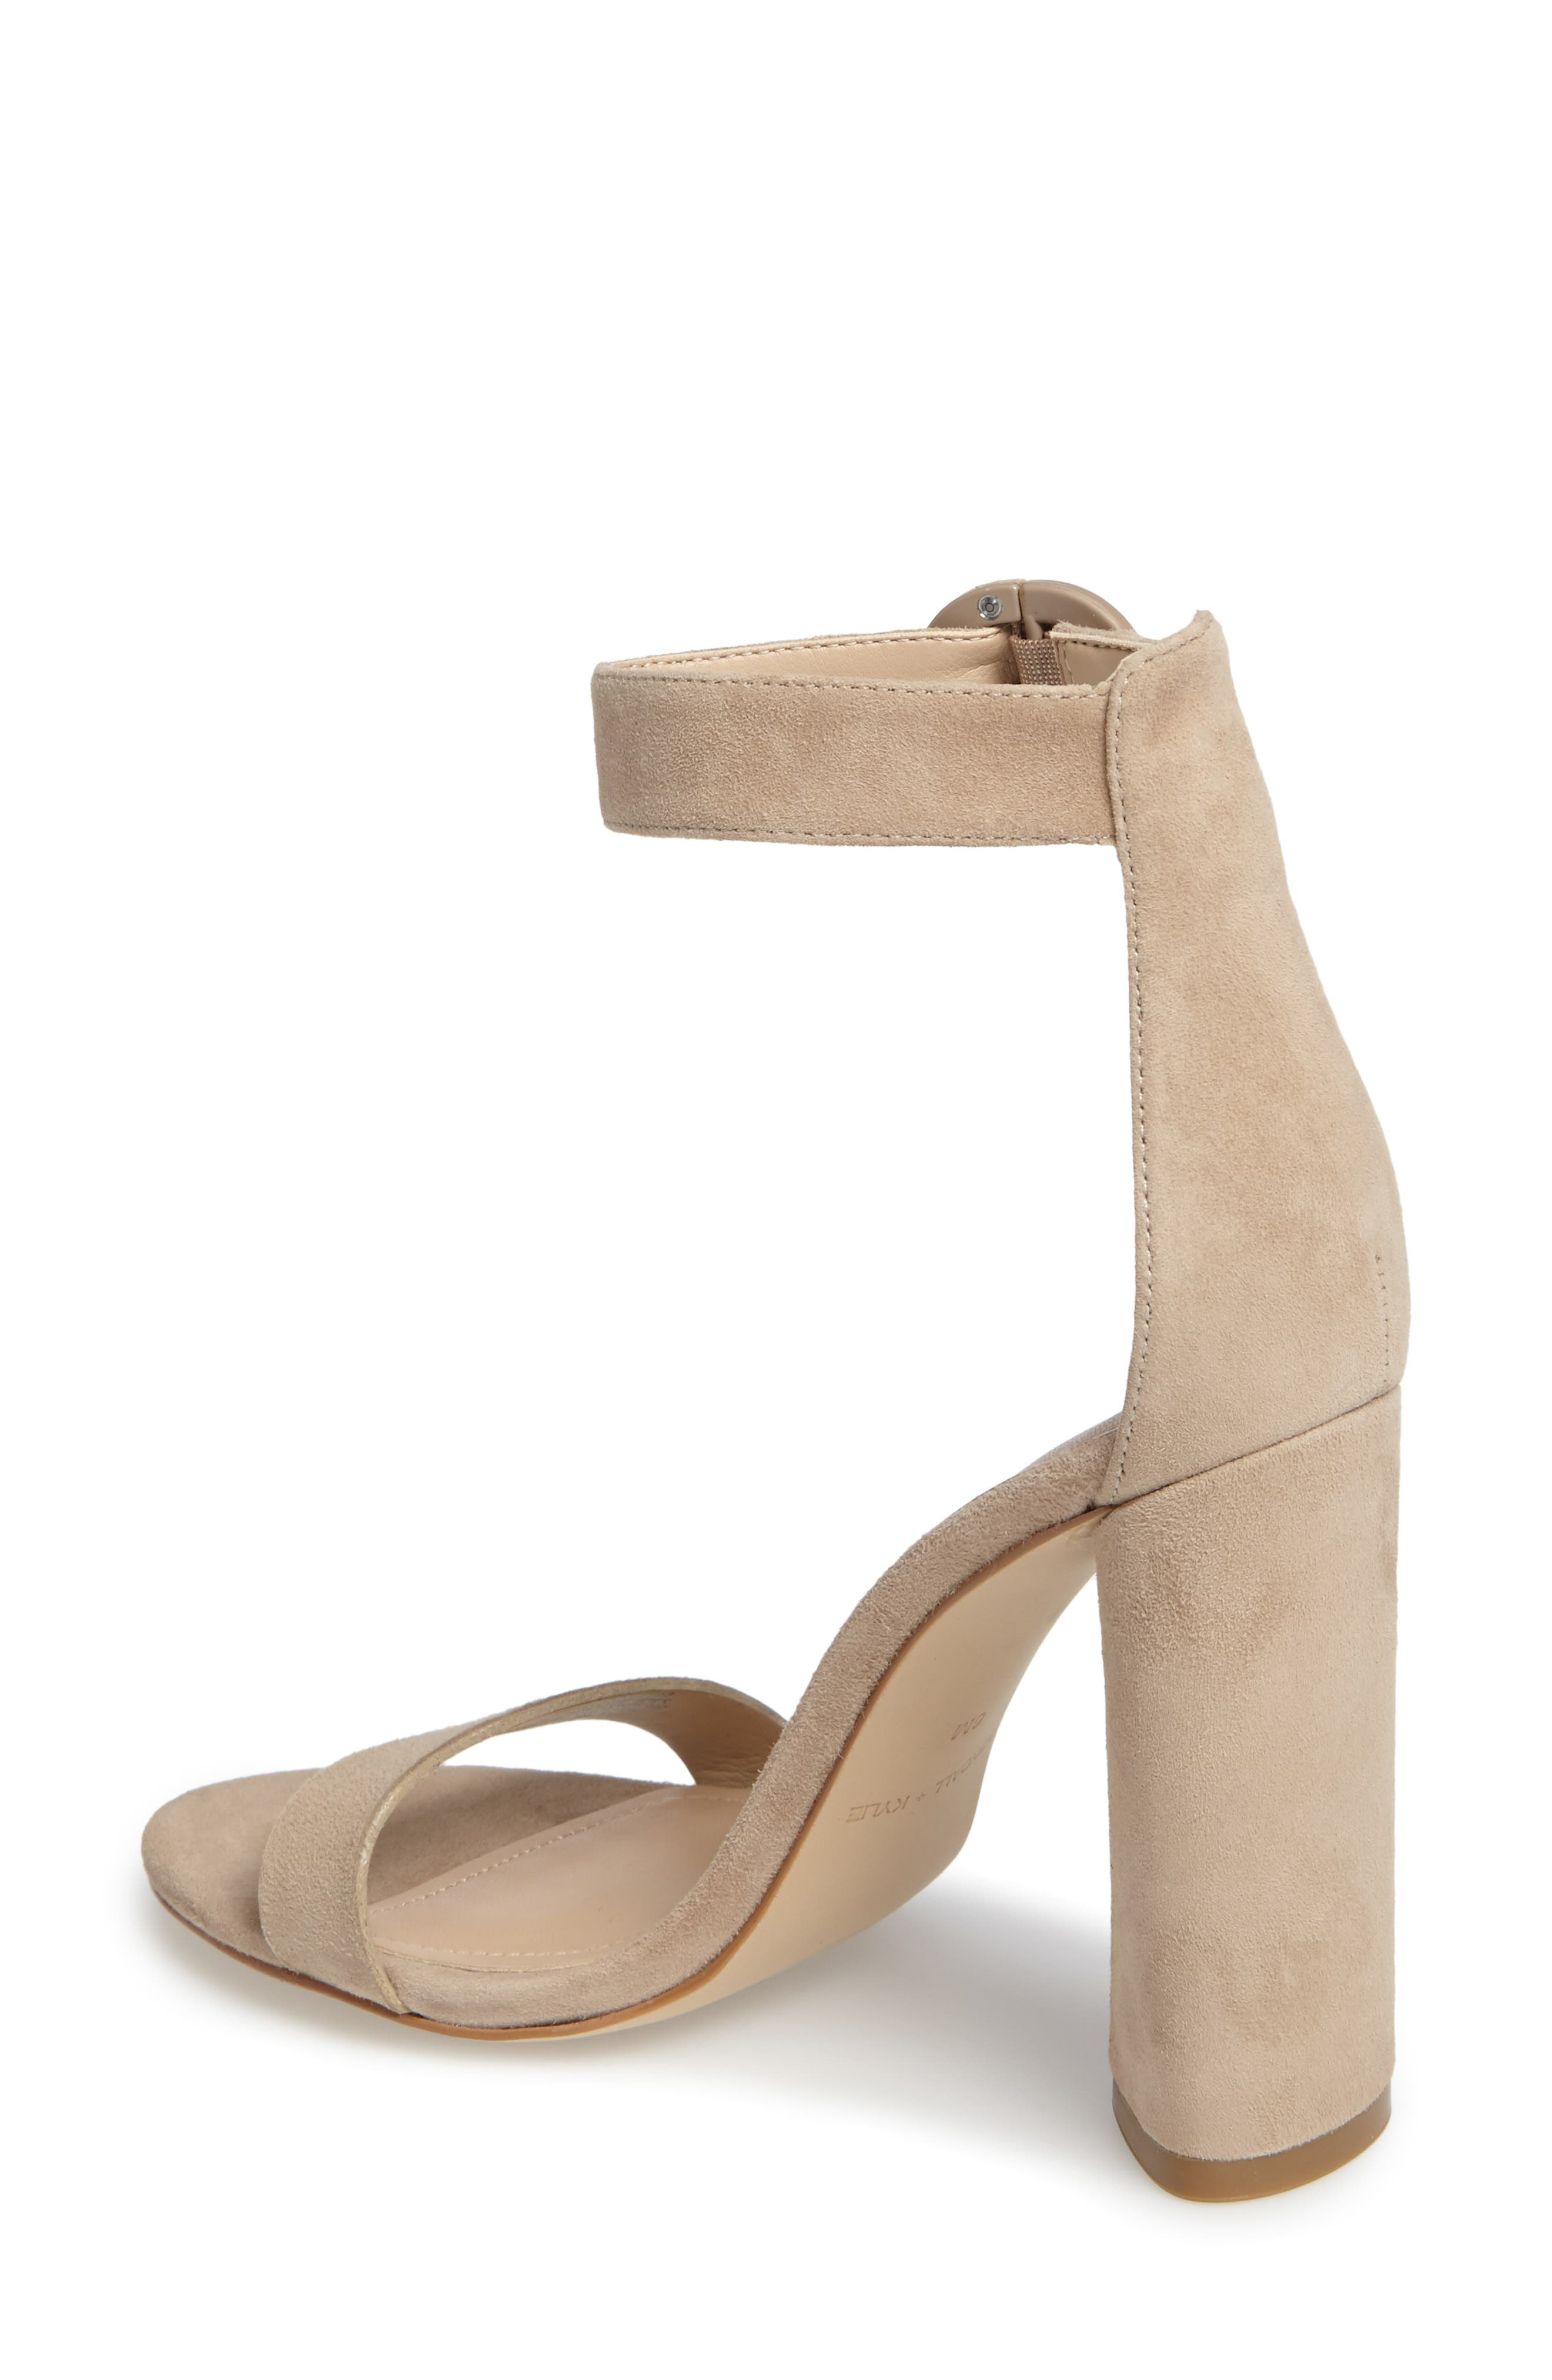 Giselle Strappy Sandal,                             Alternate thumbnail 2, color,                             Sughero Suede